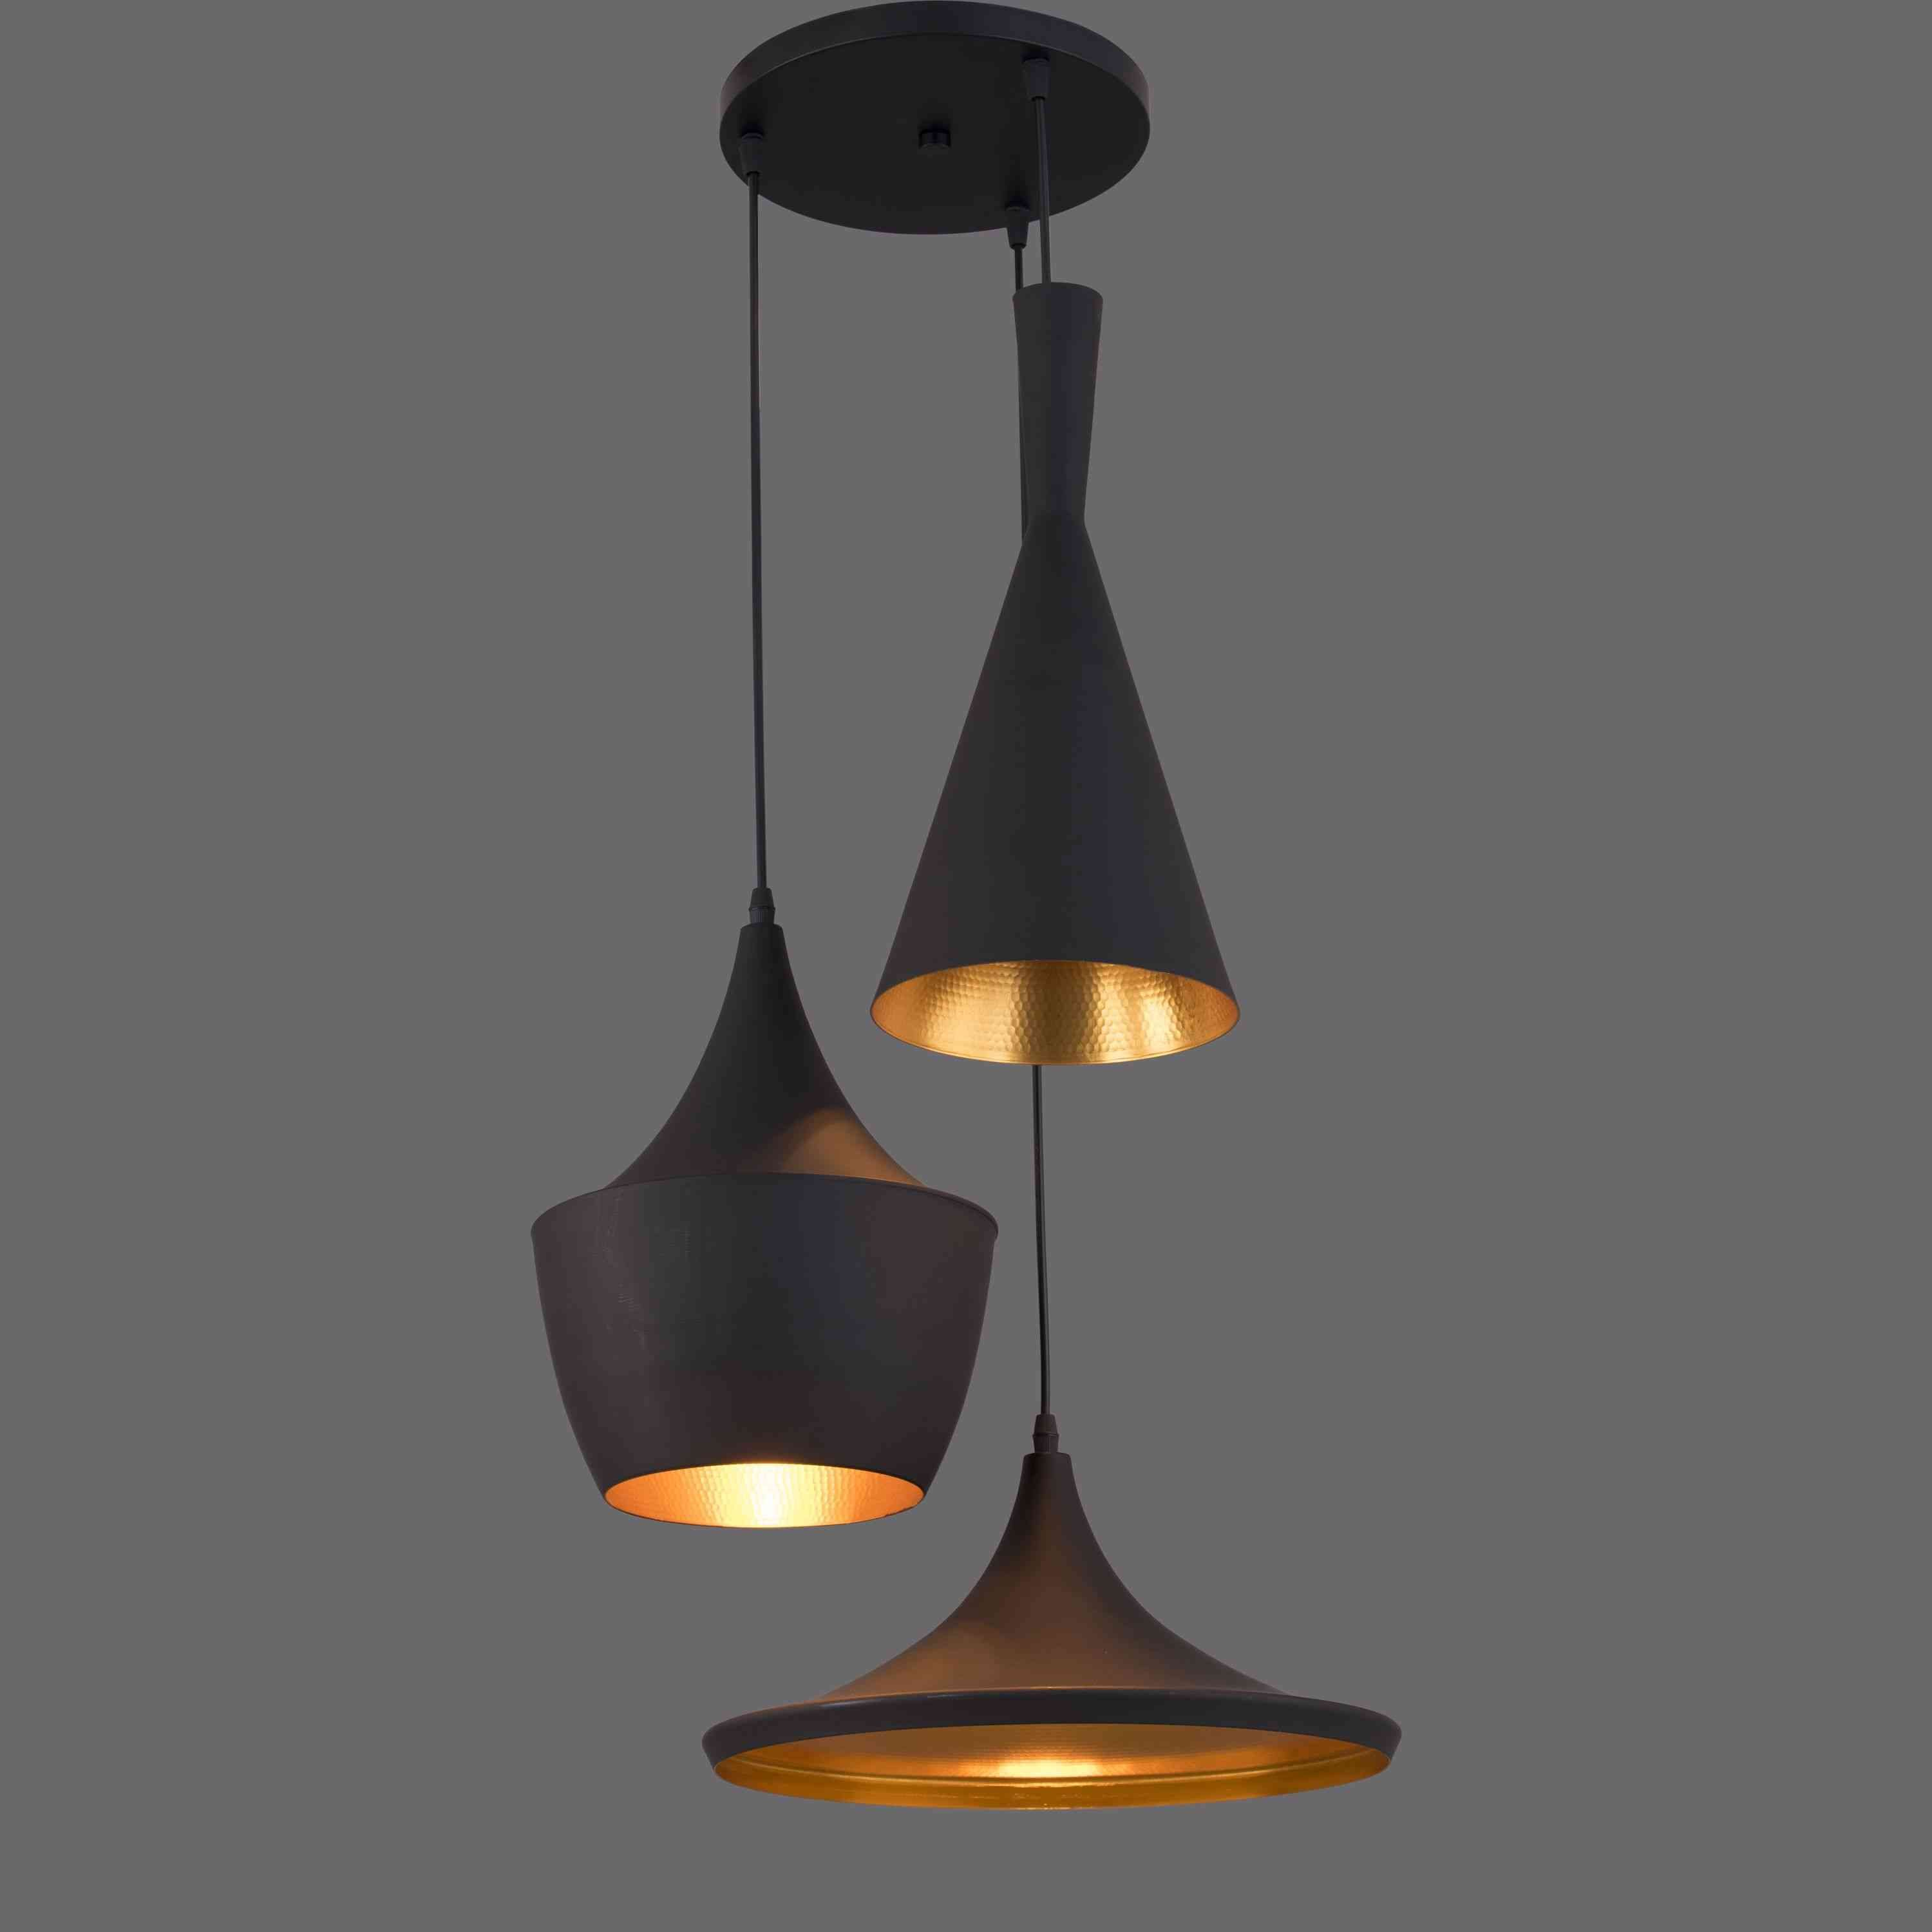 Leave The Light On Buy Premium Pendant Lights Online In India At A Great Price From India S Top Ho Buy Pendant Lights Pendant Ceiling Lamp Bulb Pendant Light